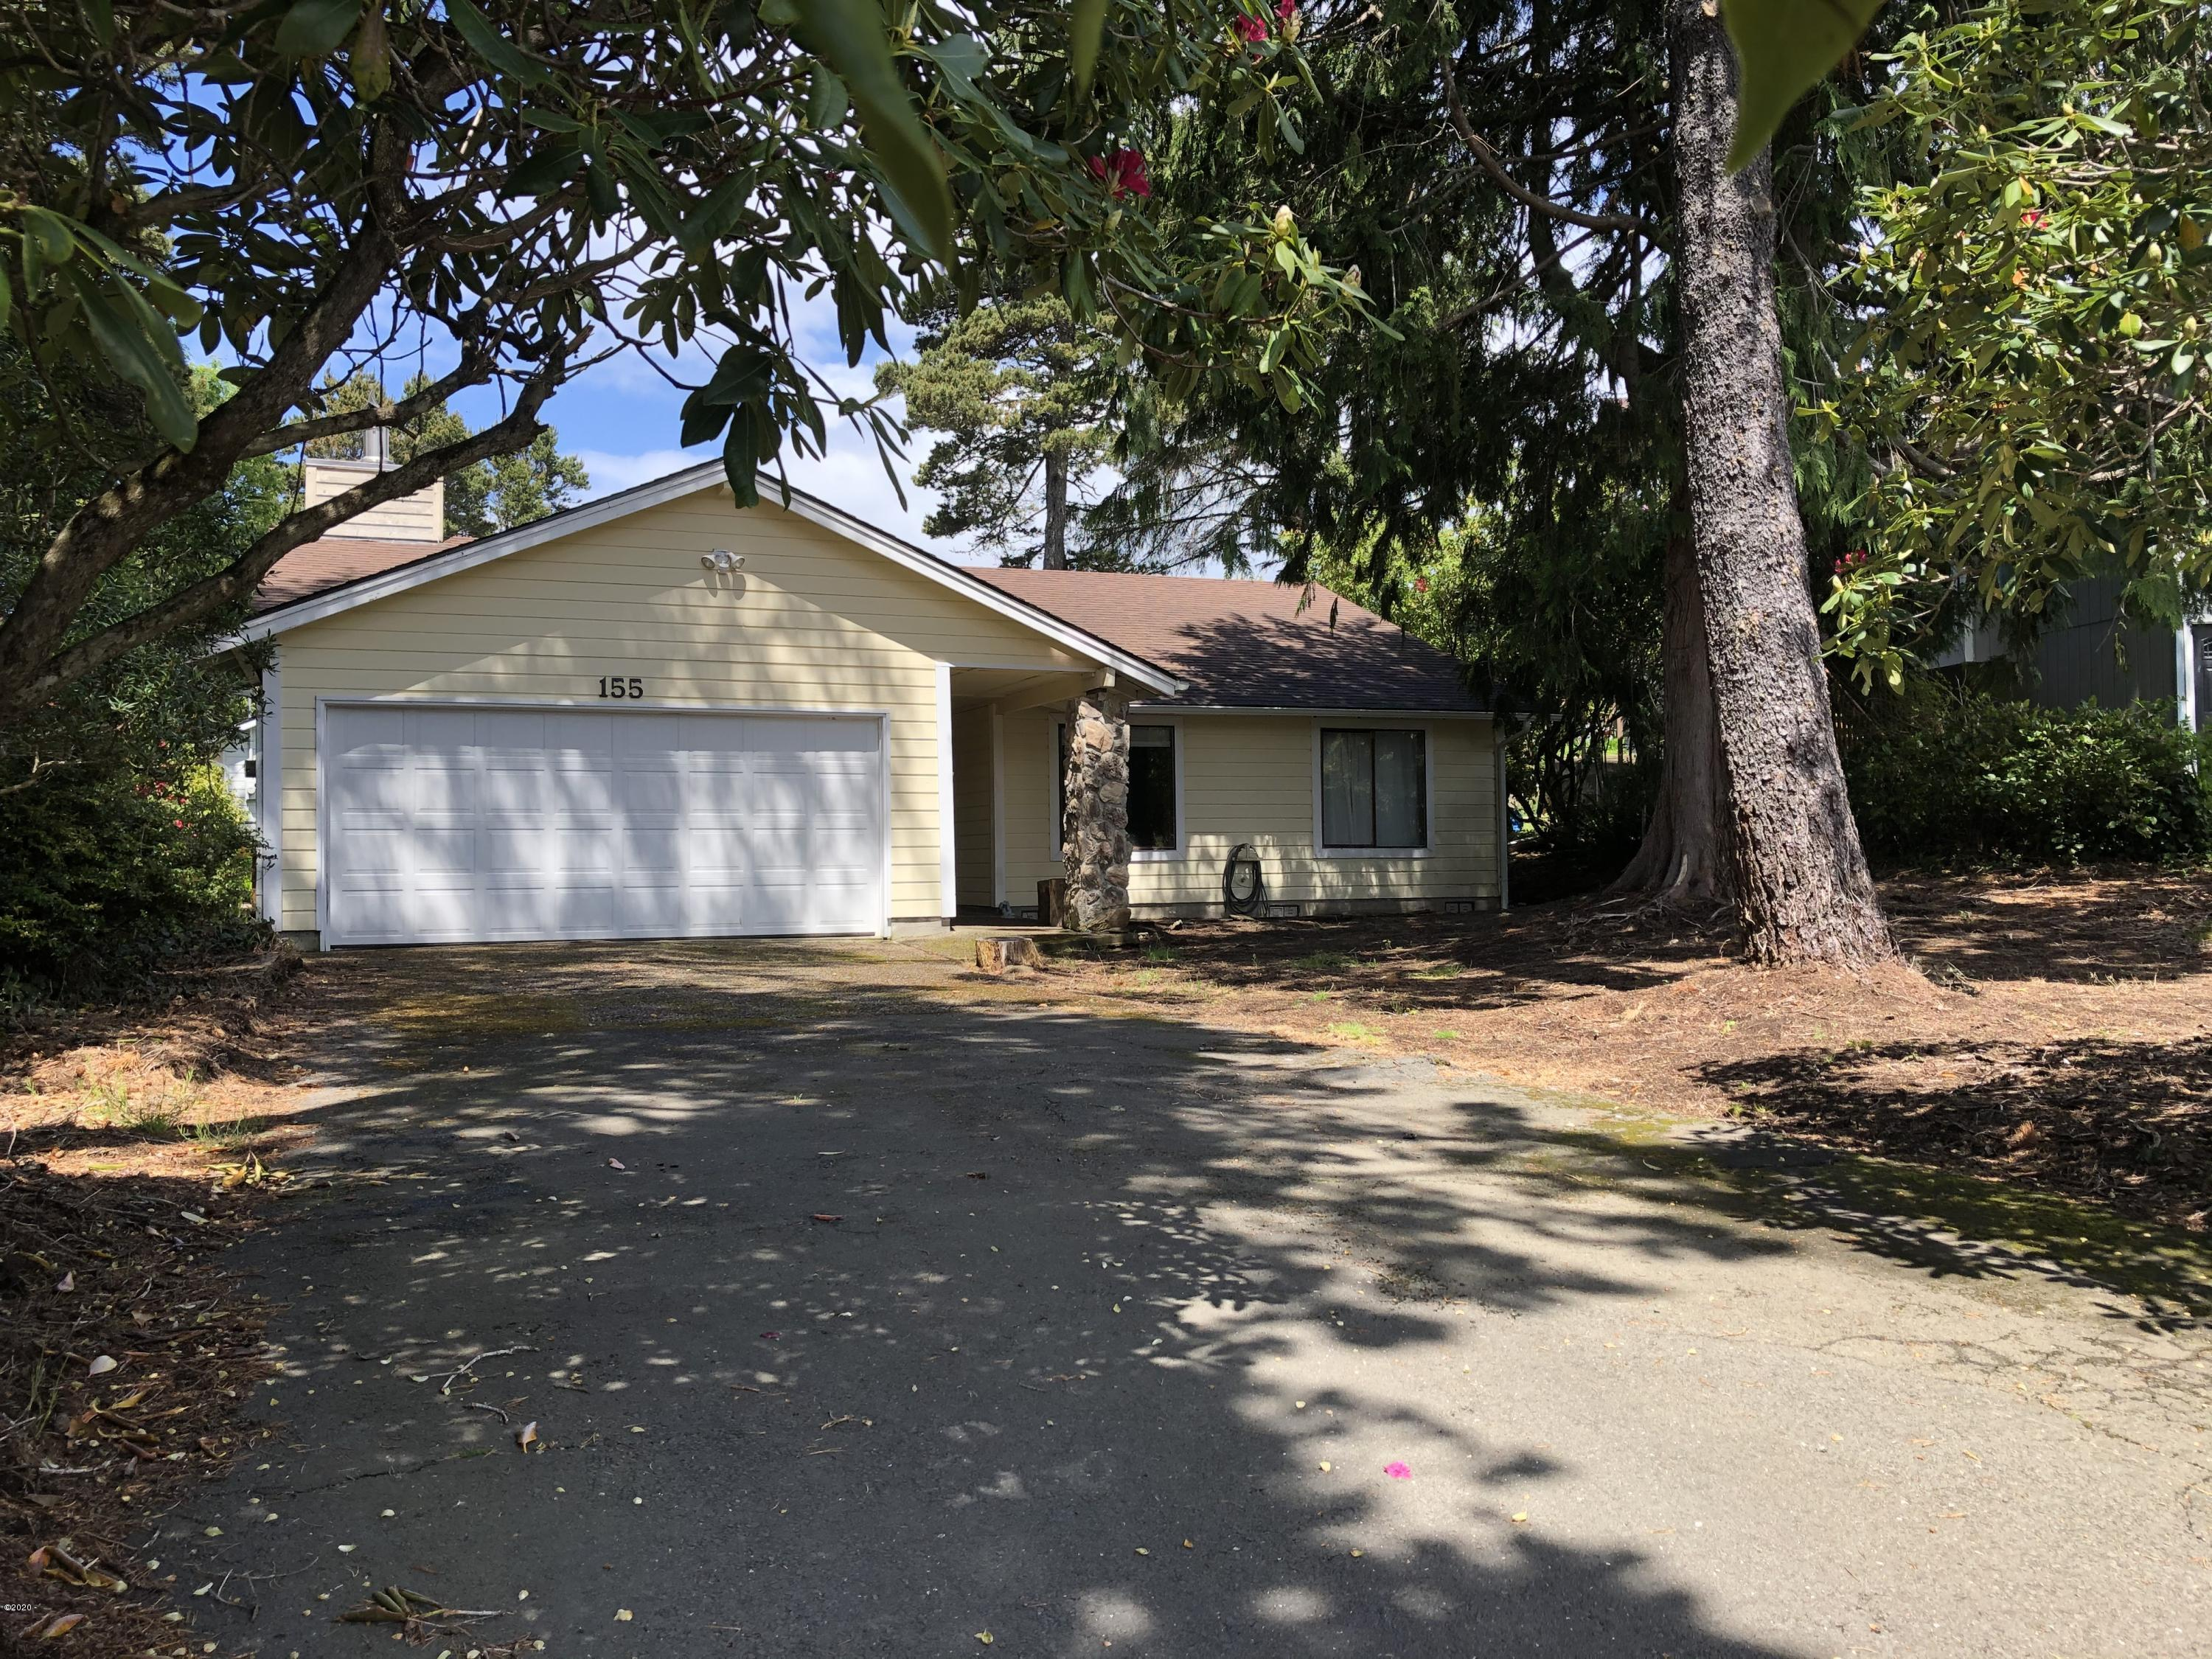 155 NW Lancer St, Lincoln City, OR 97367 - One level on nice lot